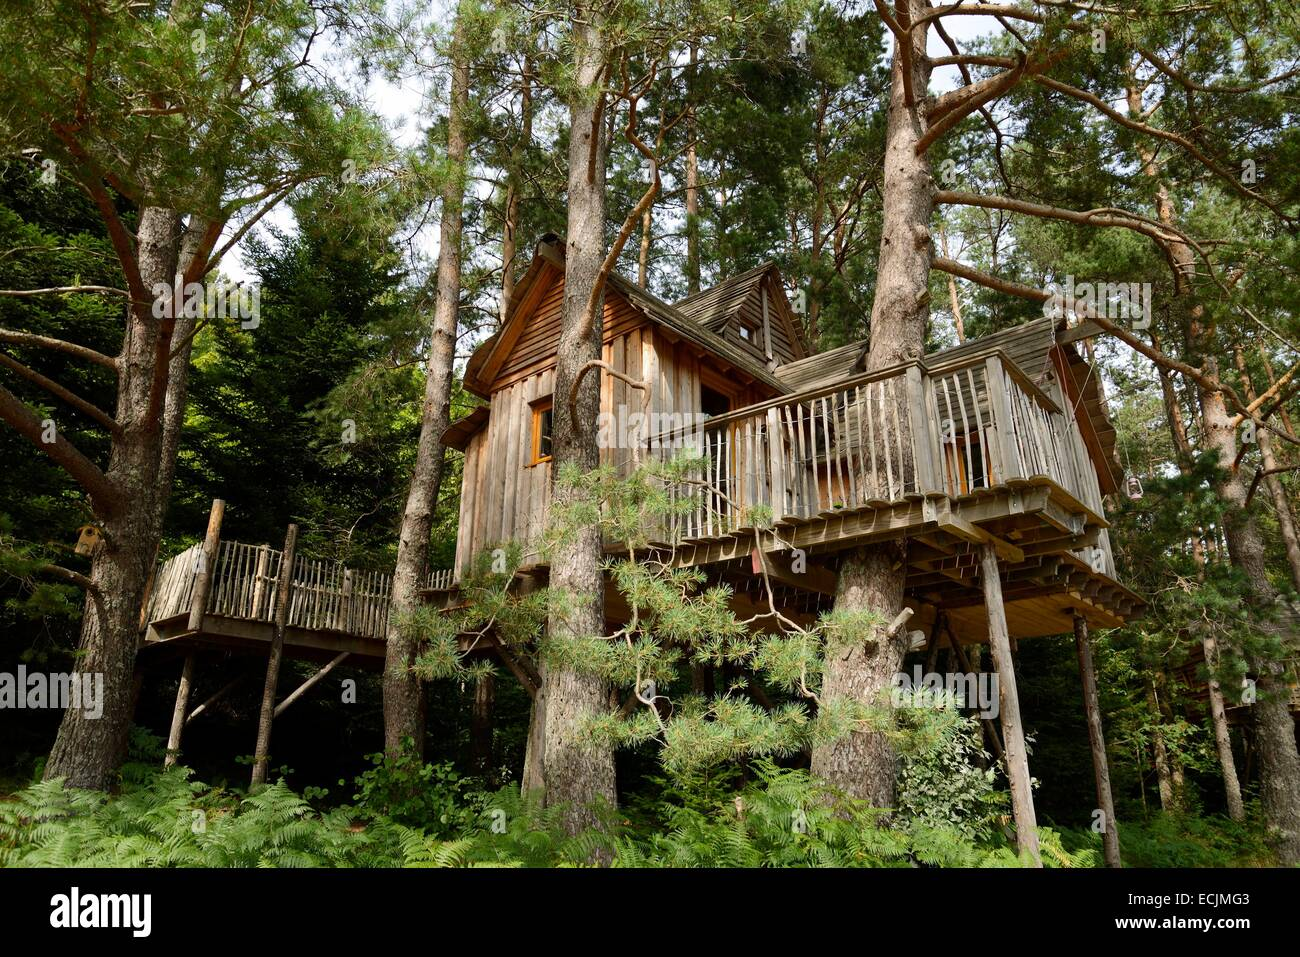 France, Vosges, Champdray, Nids des Vosges, treehouse in the trees - Stock Image